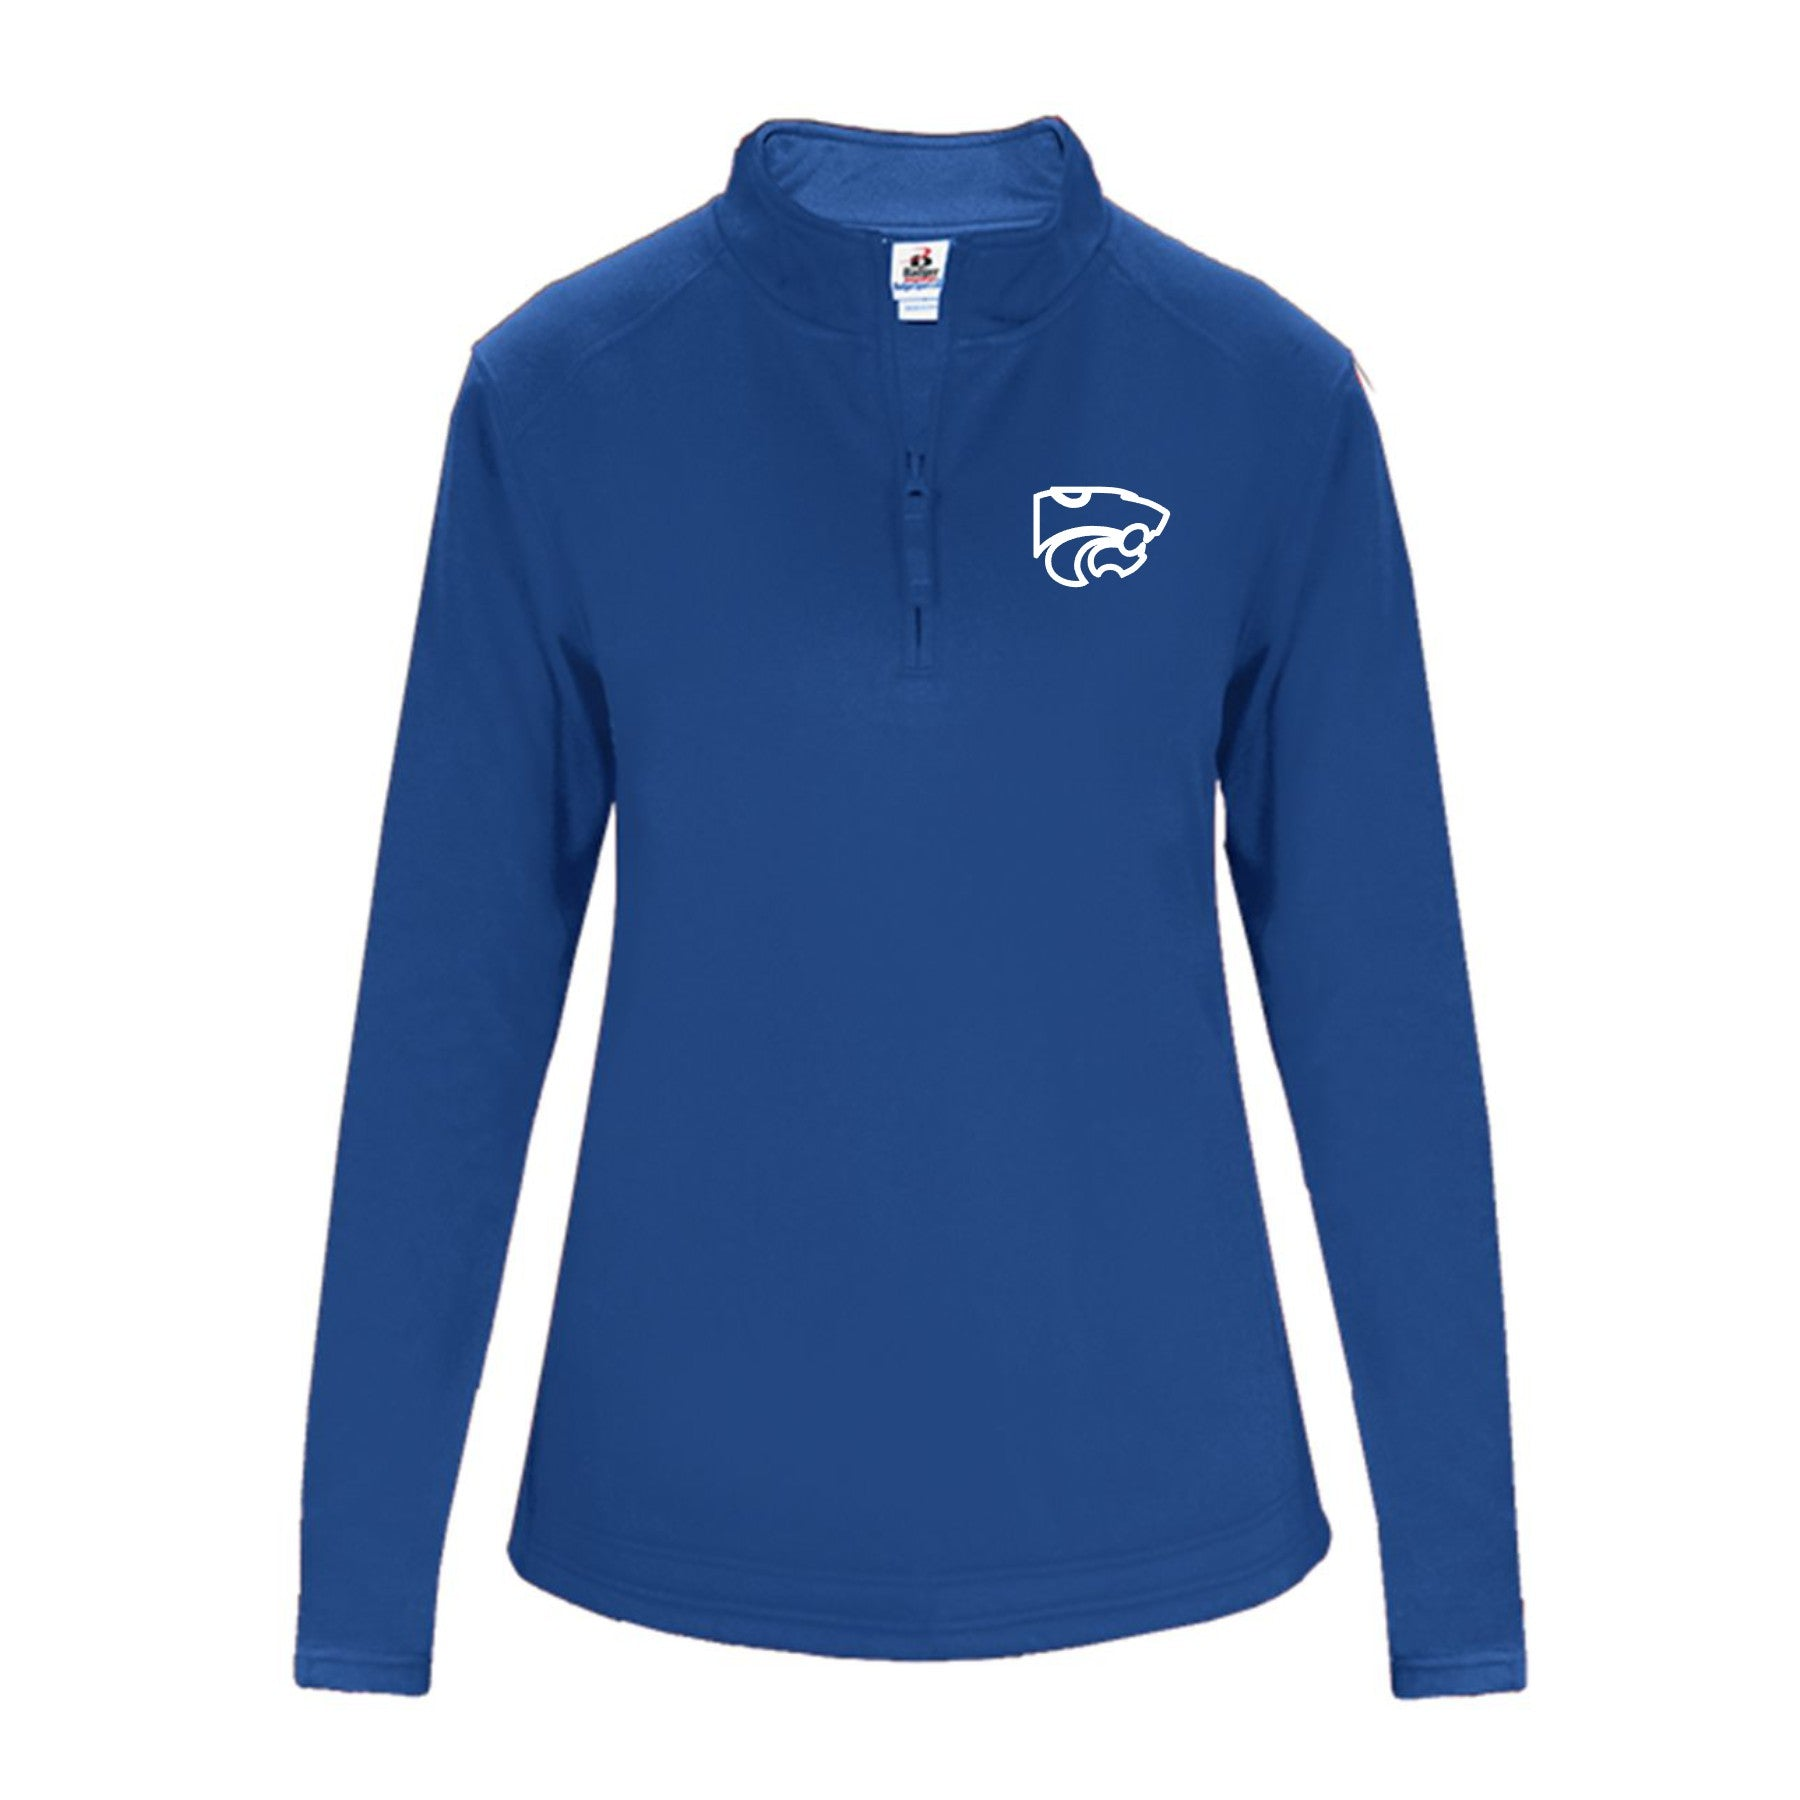 LADIES Performance Fleece Quarter-Zip Pullover- ROYAL WILDCAT